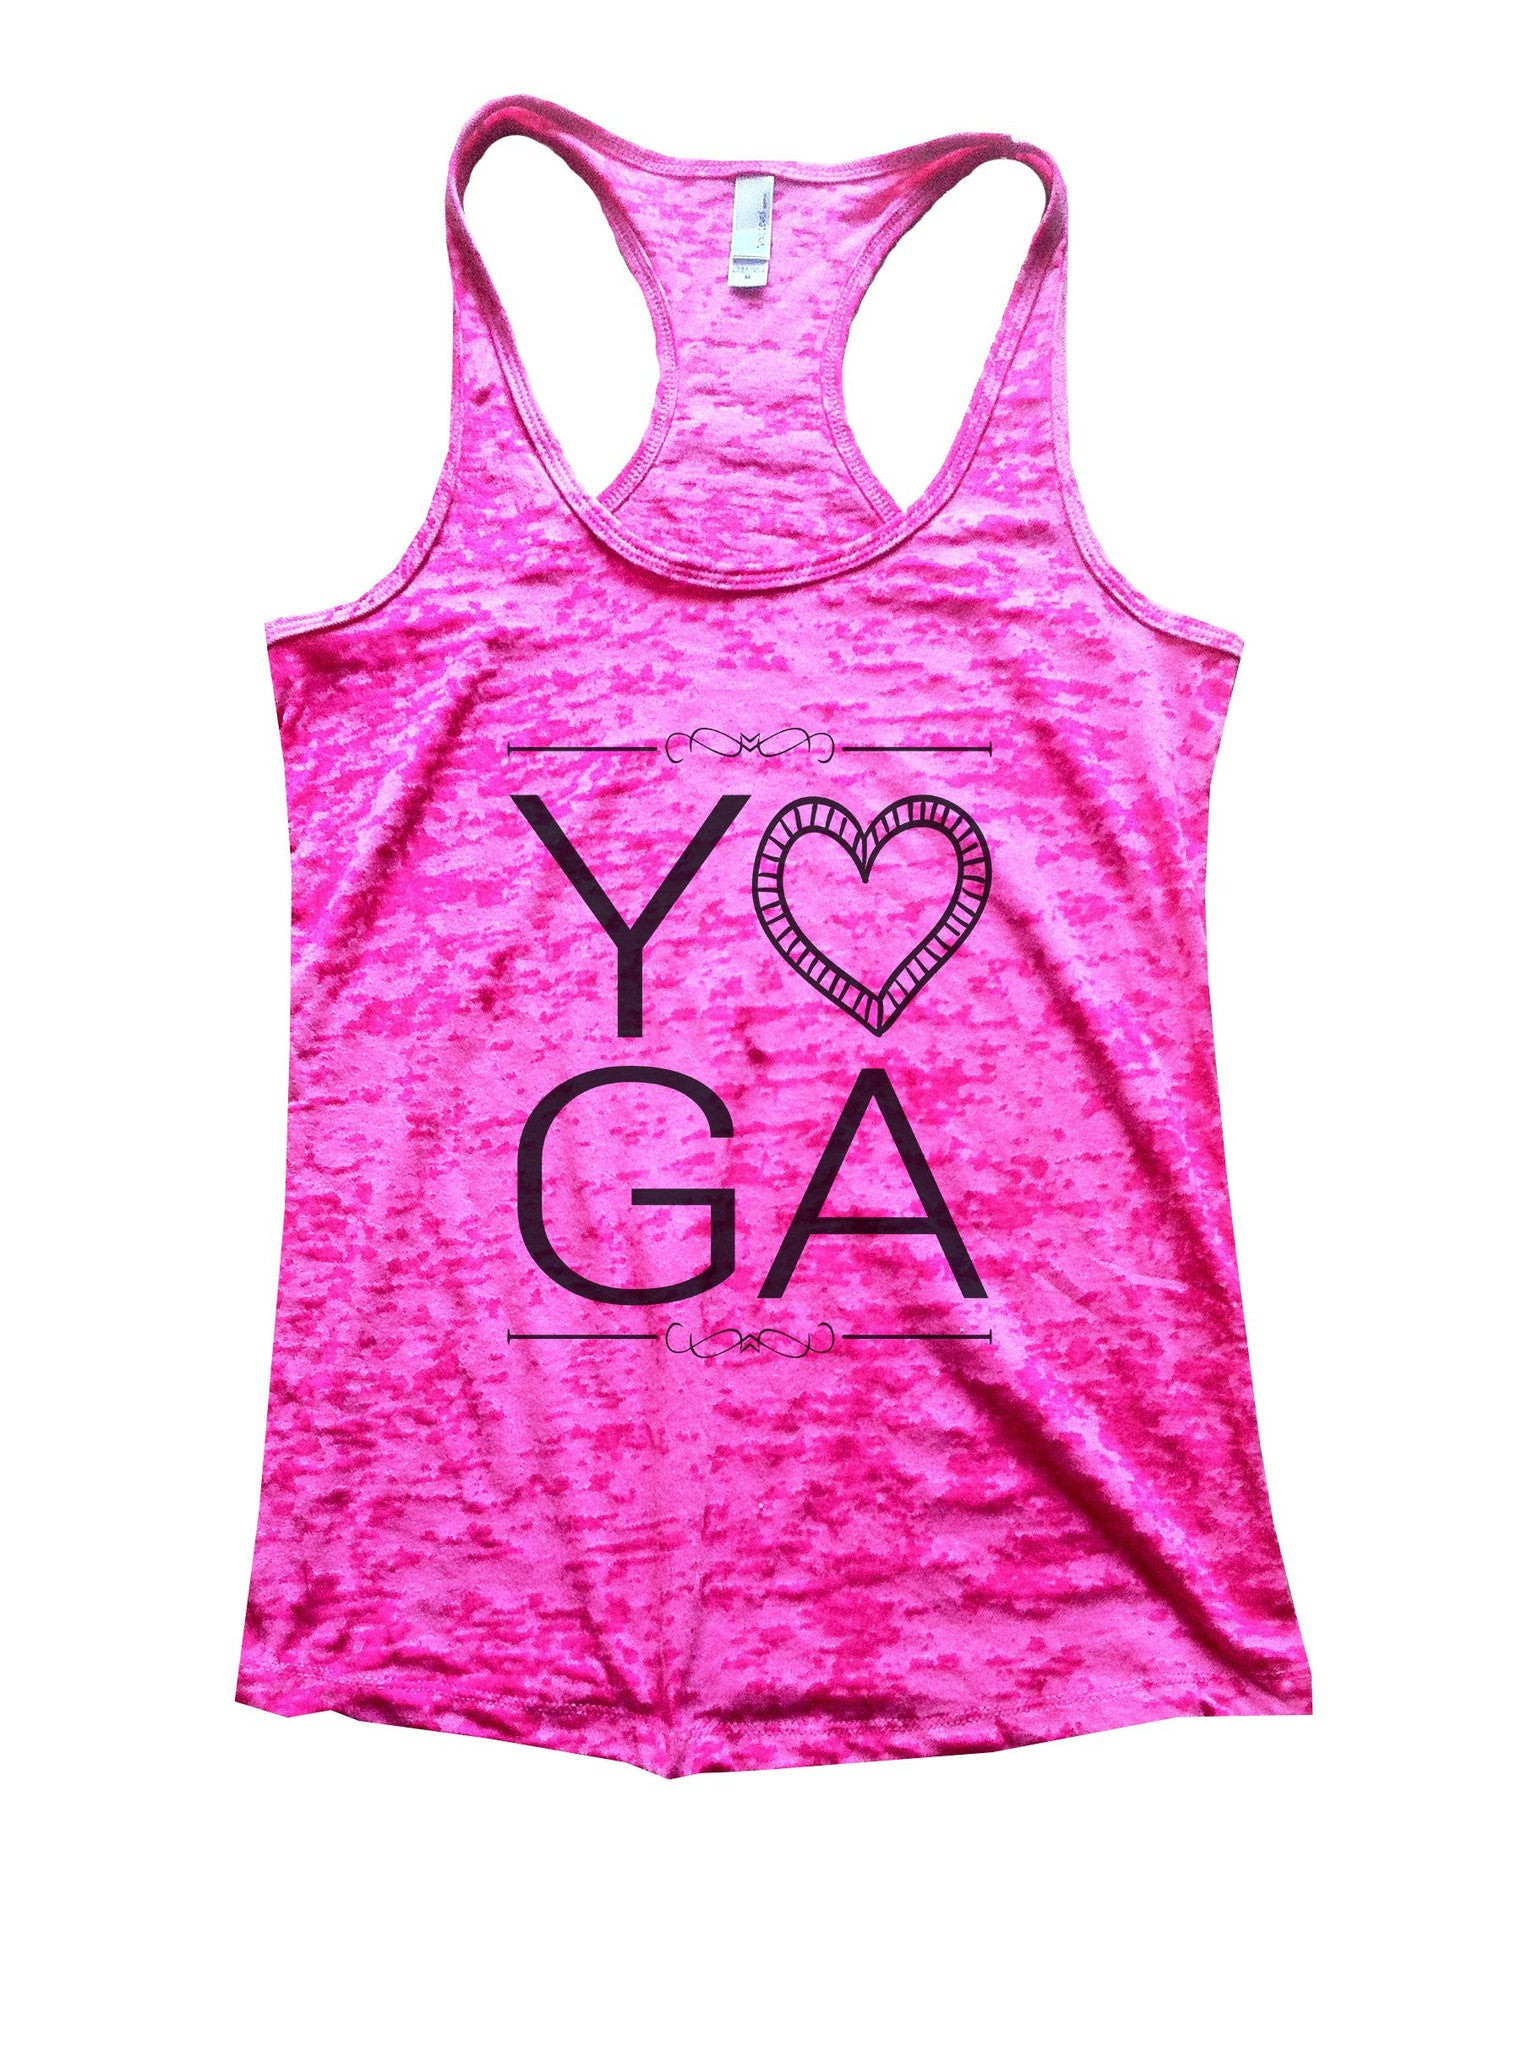 Yoga Burnout Tank Top By BurnoutTankTops.com - 838 - Funny Shirts Tank Tops Burnouts and Triblends  - 5